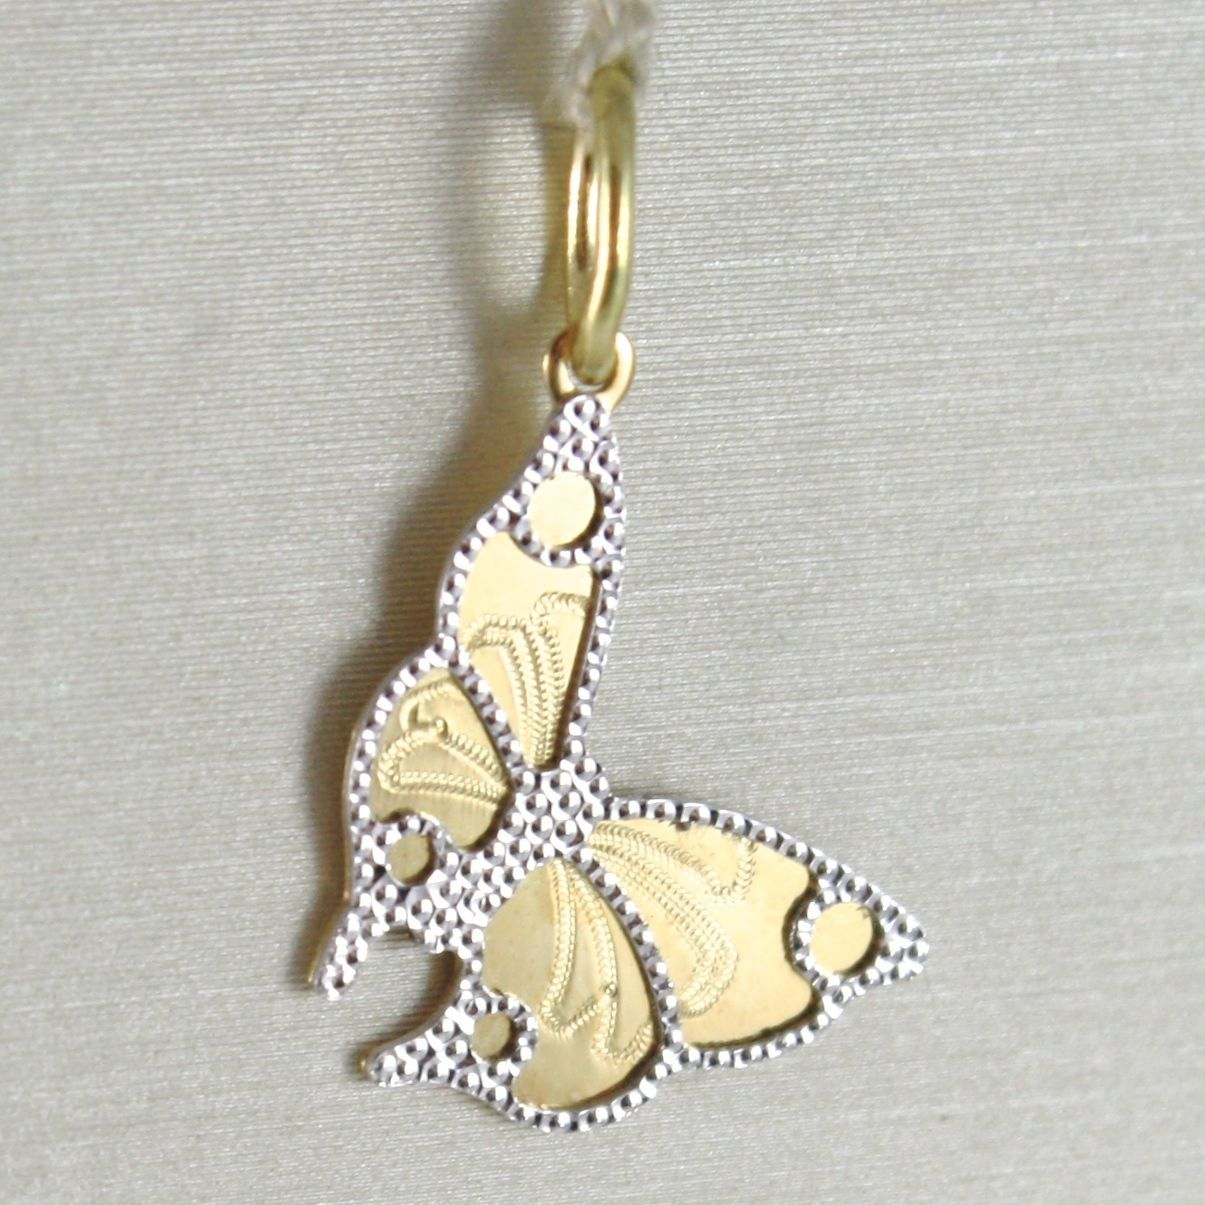 YELLOW GOLD PENDANT WHITE 750 18K, BUTTERFLY DOUBLE LAYER, PENDANT, 2.2 CM